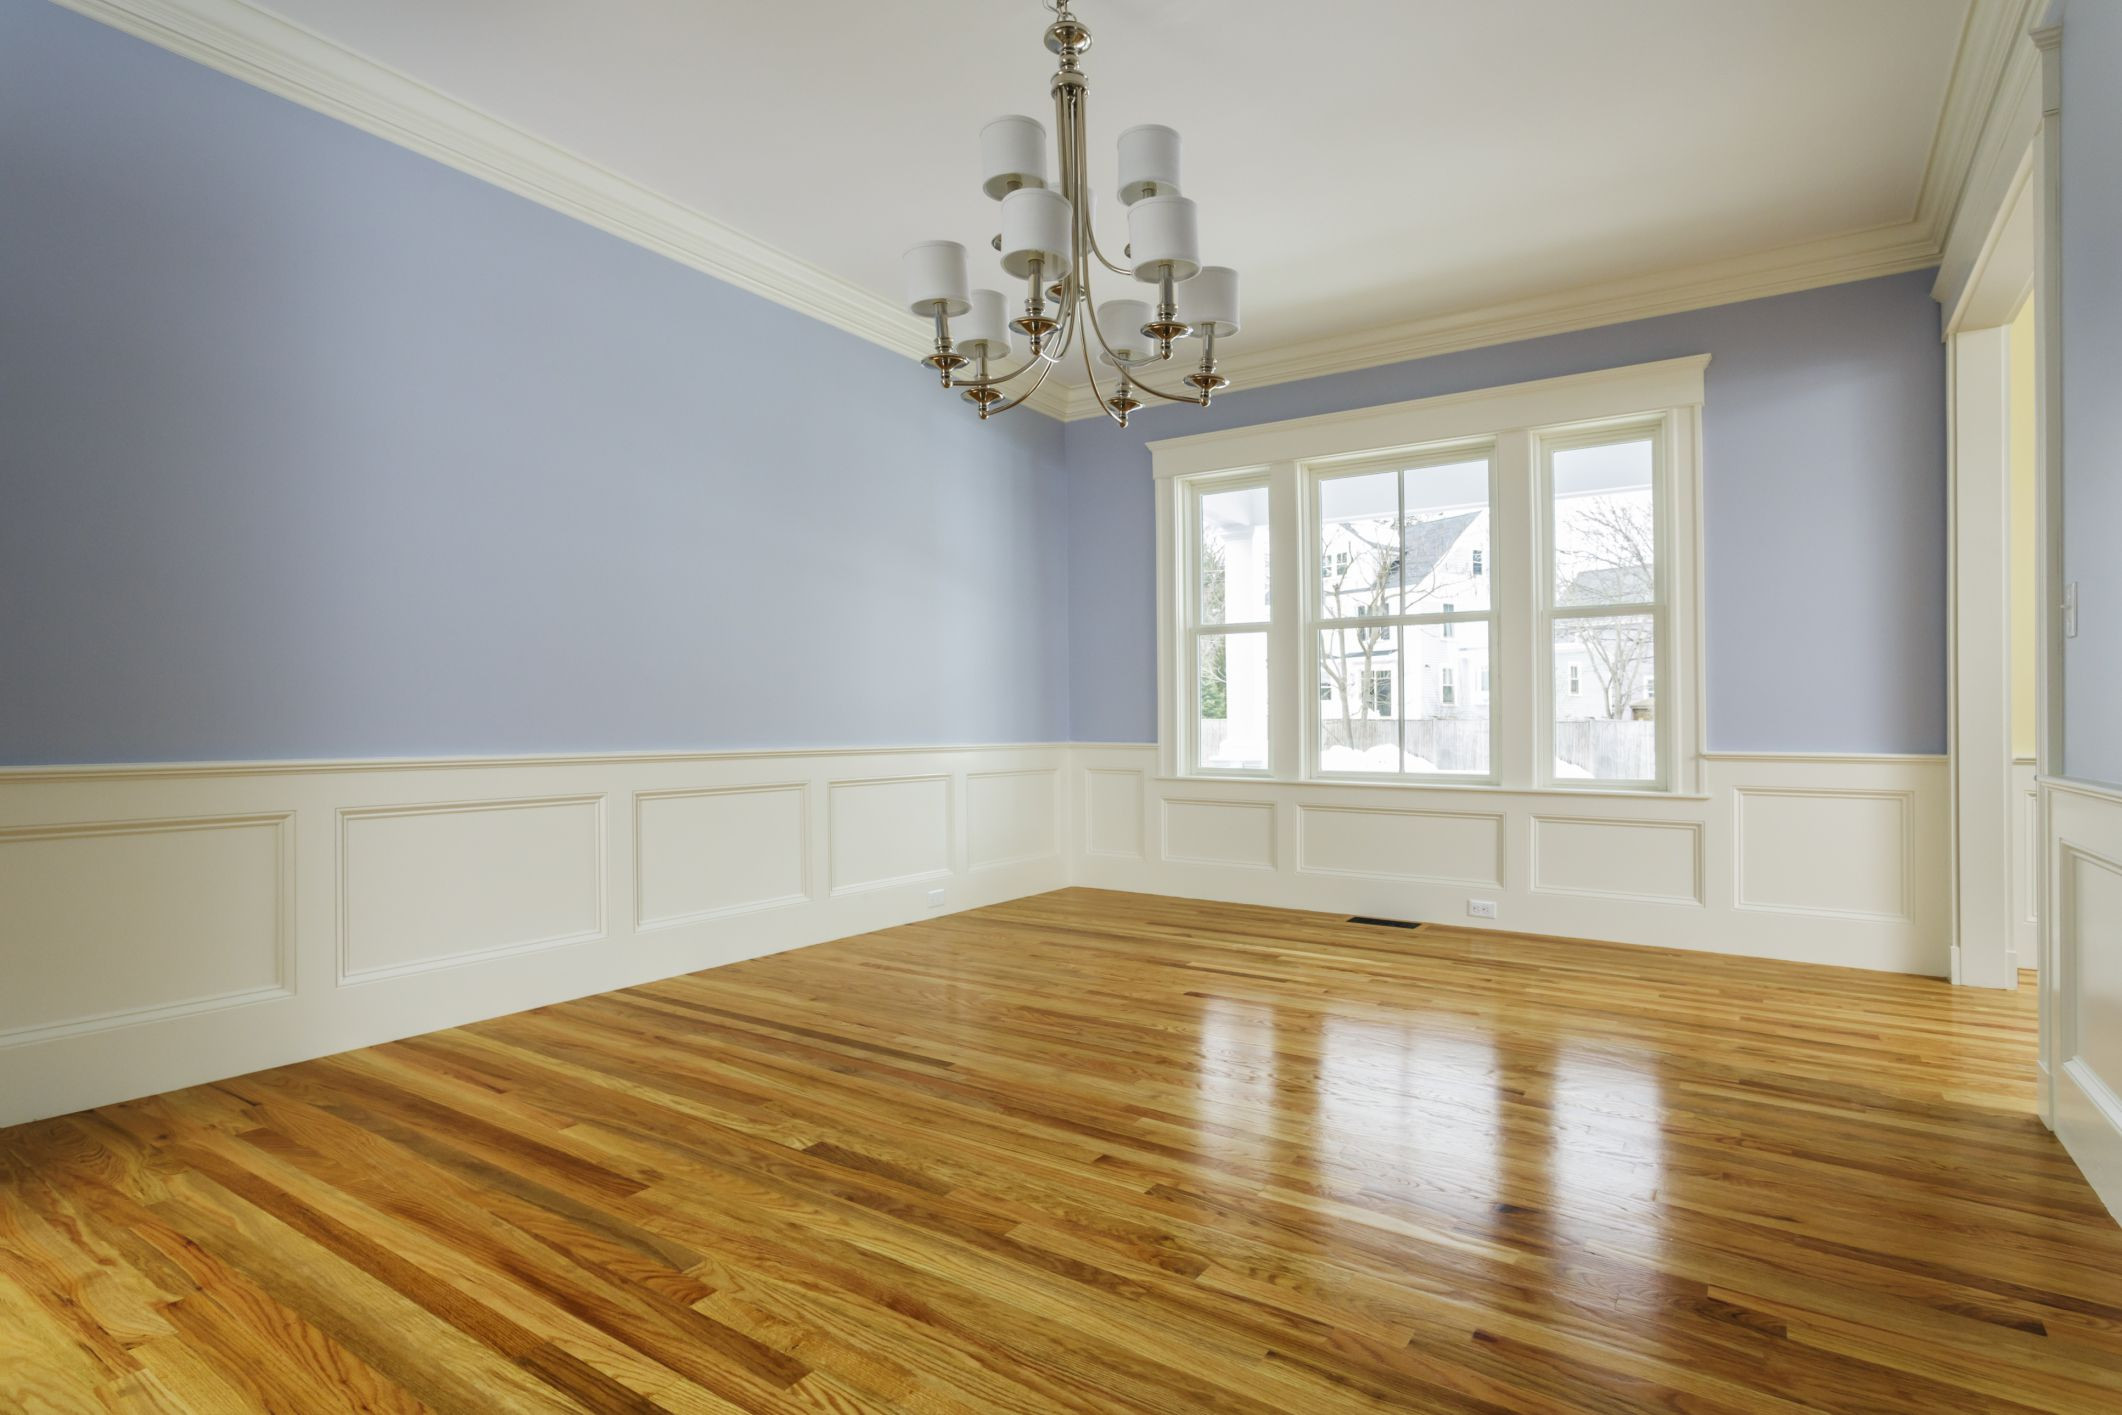 red oak unfinished hardwood flooring for sale of the cost to refinish hardwood floors inside 168686572 highres 56a2fd773df78cf7727b6cb3